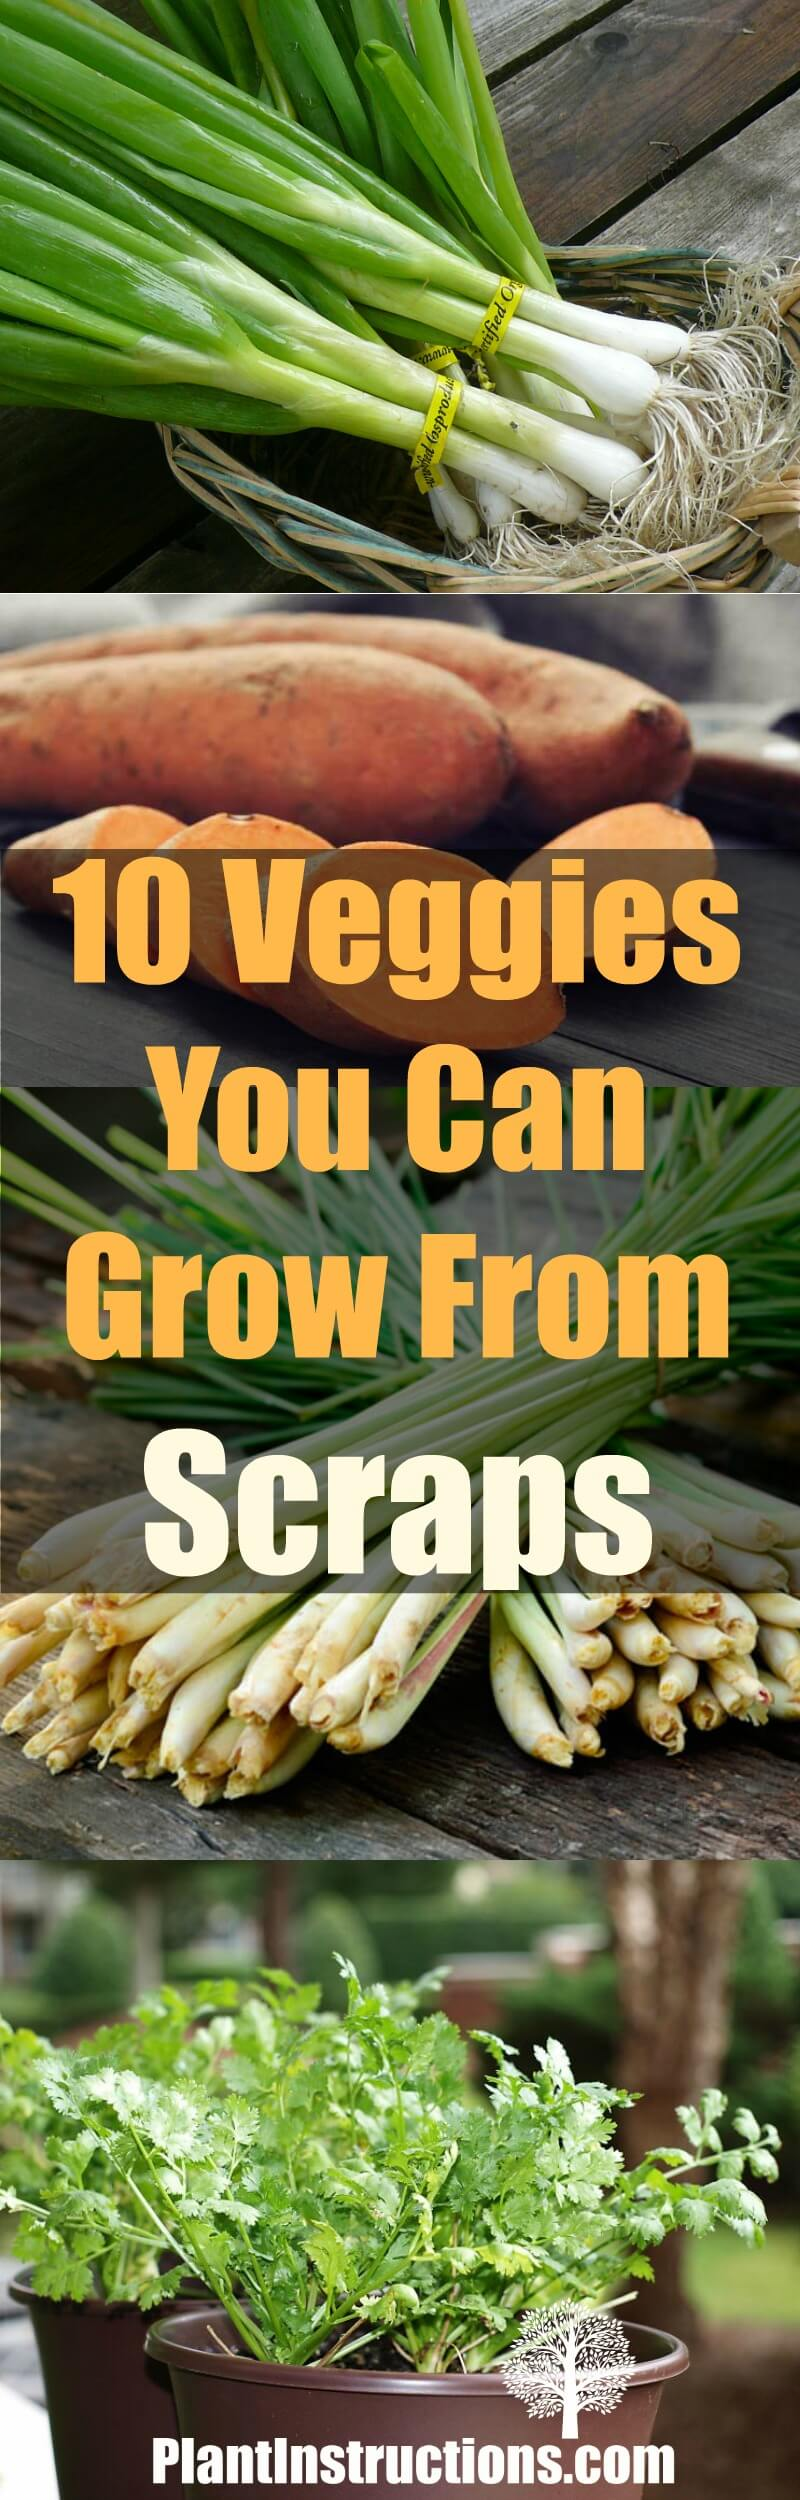 veggies you can grow from scraps